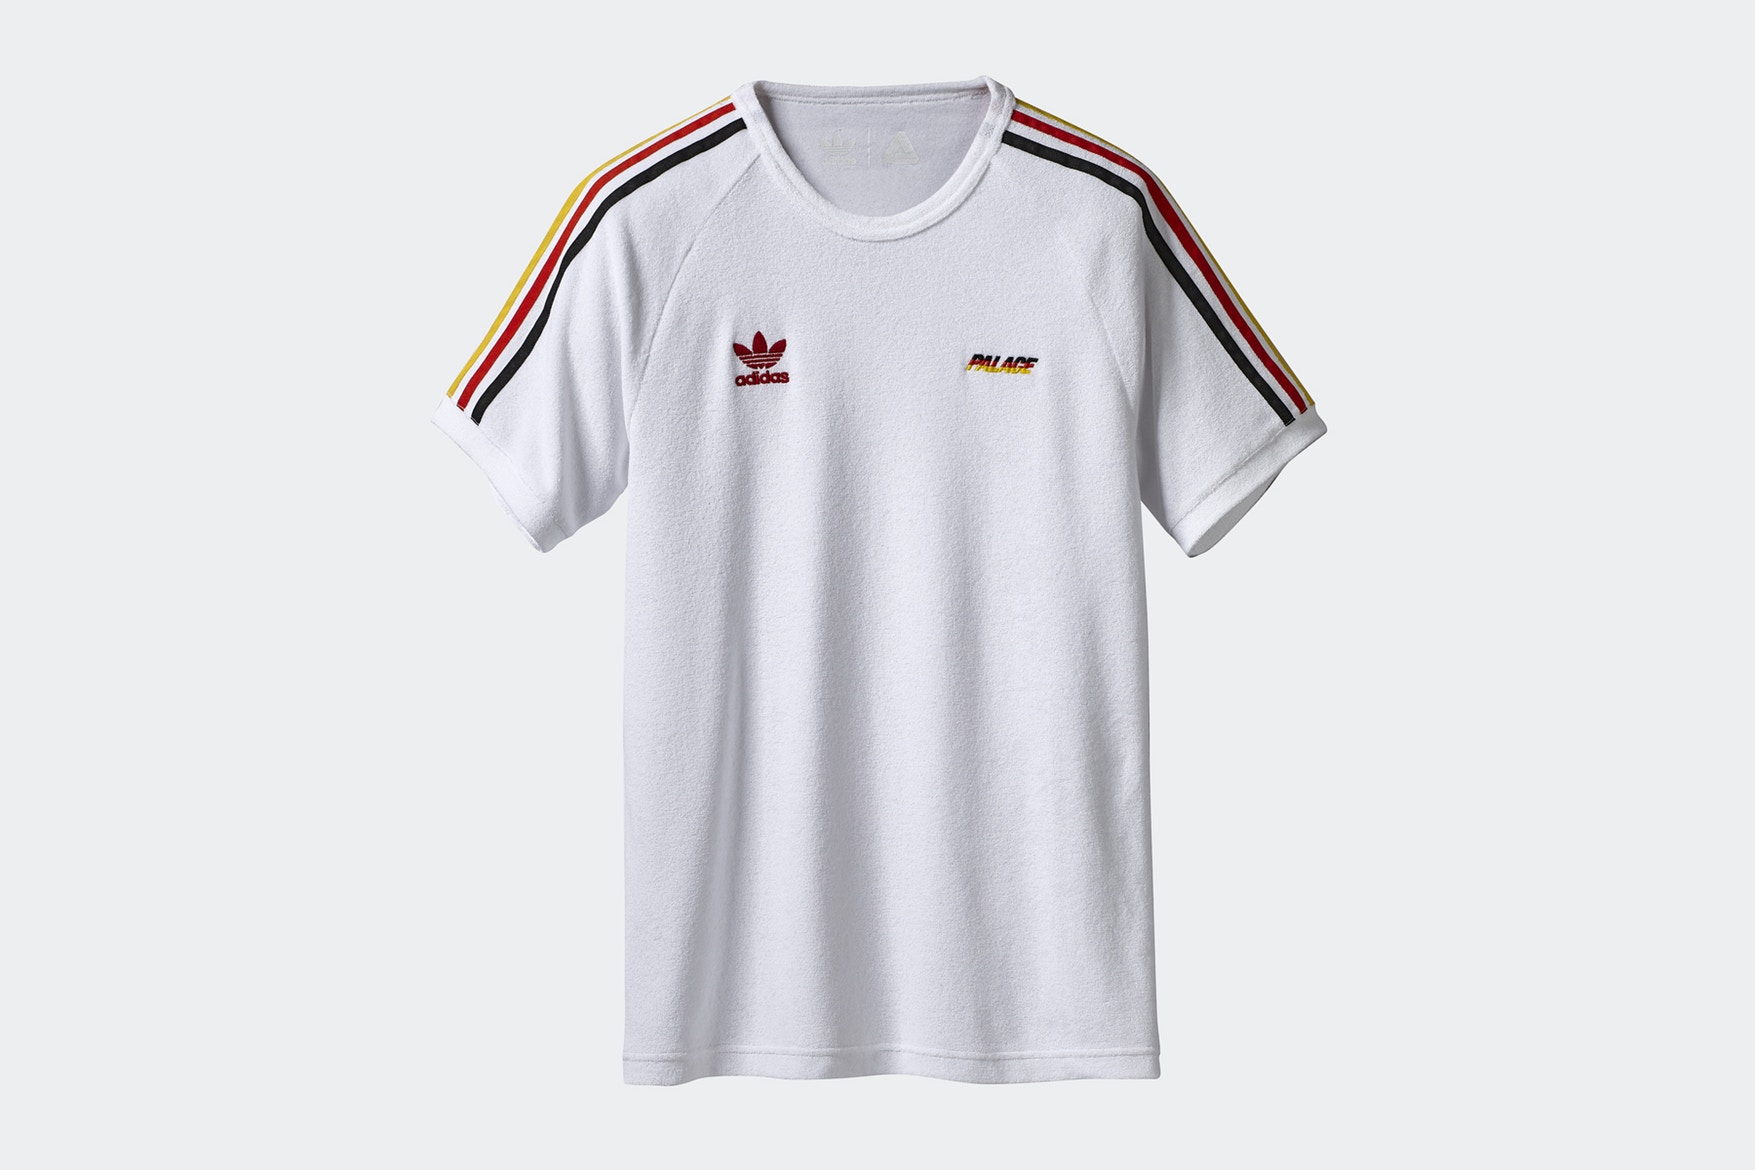 Palace x adidas Originals Summer 2018 Collection   The Source